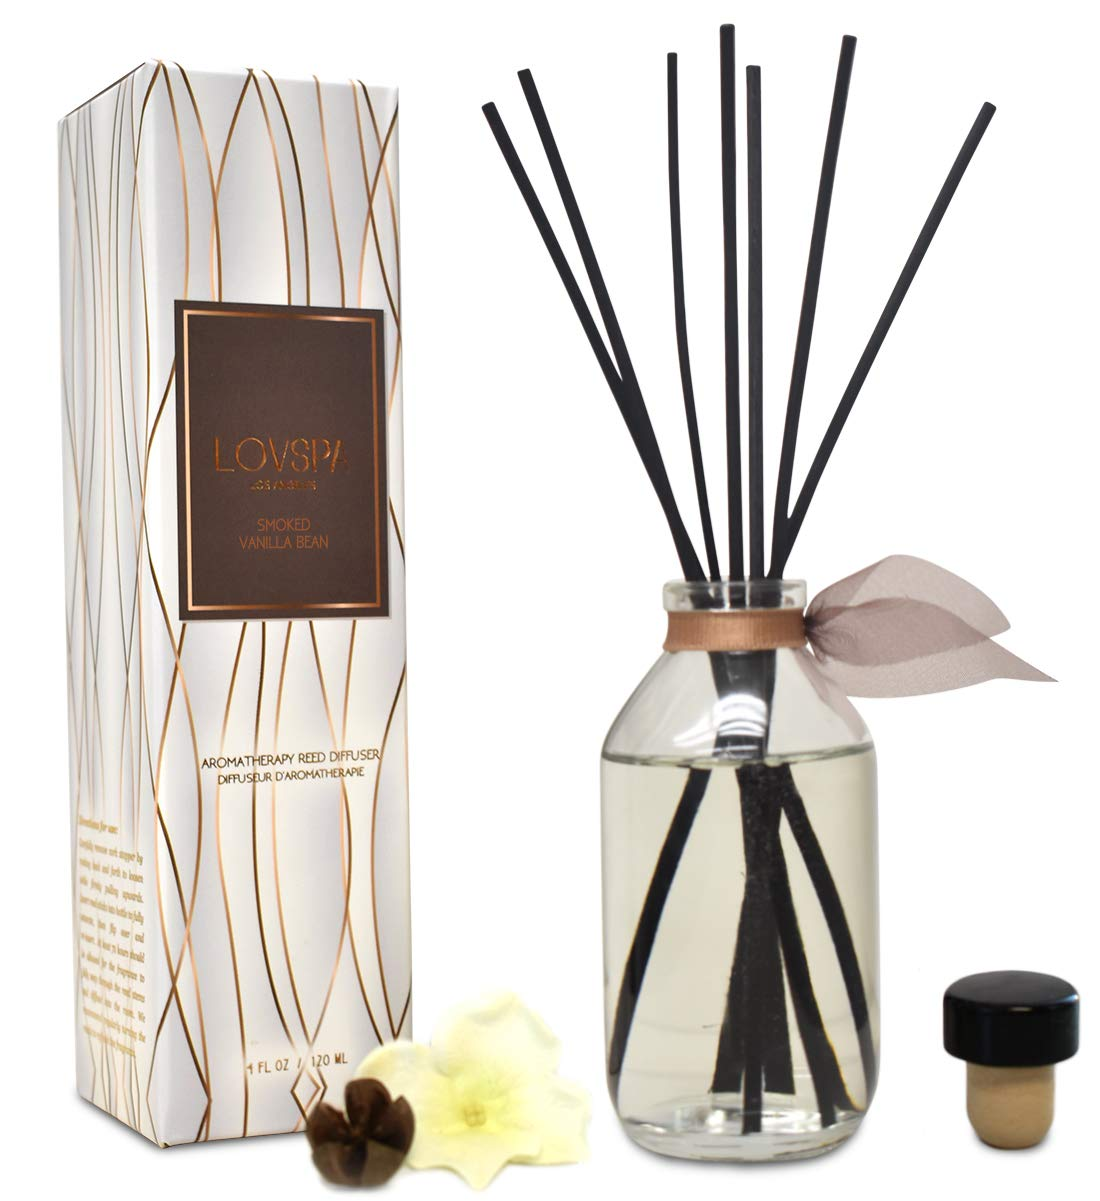 LOVSPA Smoked Vanilla Bean Reed Diffuser Set - Scented Stick Room Freshener Warm, Sultry Blend of Smoked Tahitian Vanilla, Sandalwood, Leather and Southern Bourbon - Great Gift Idea by LOVSPA